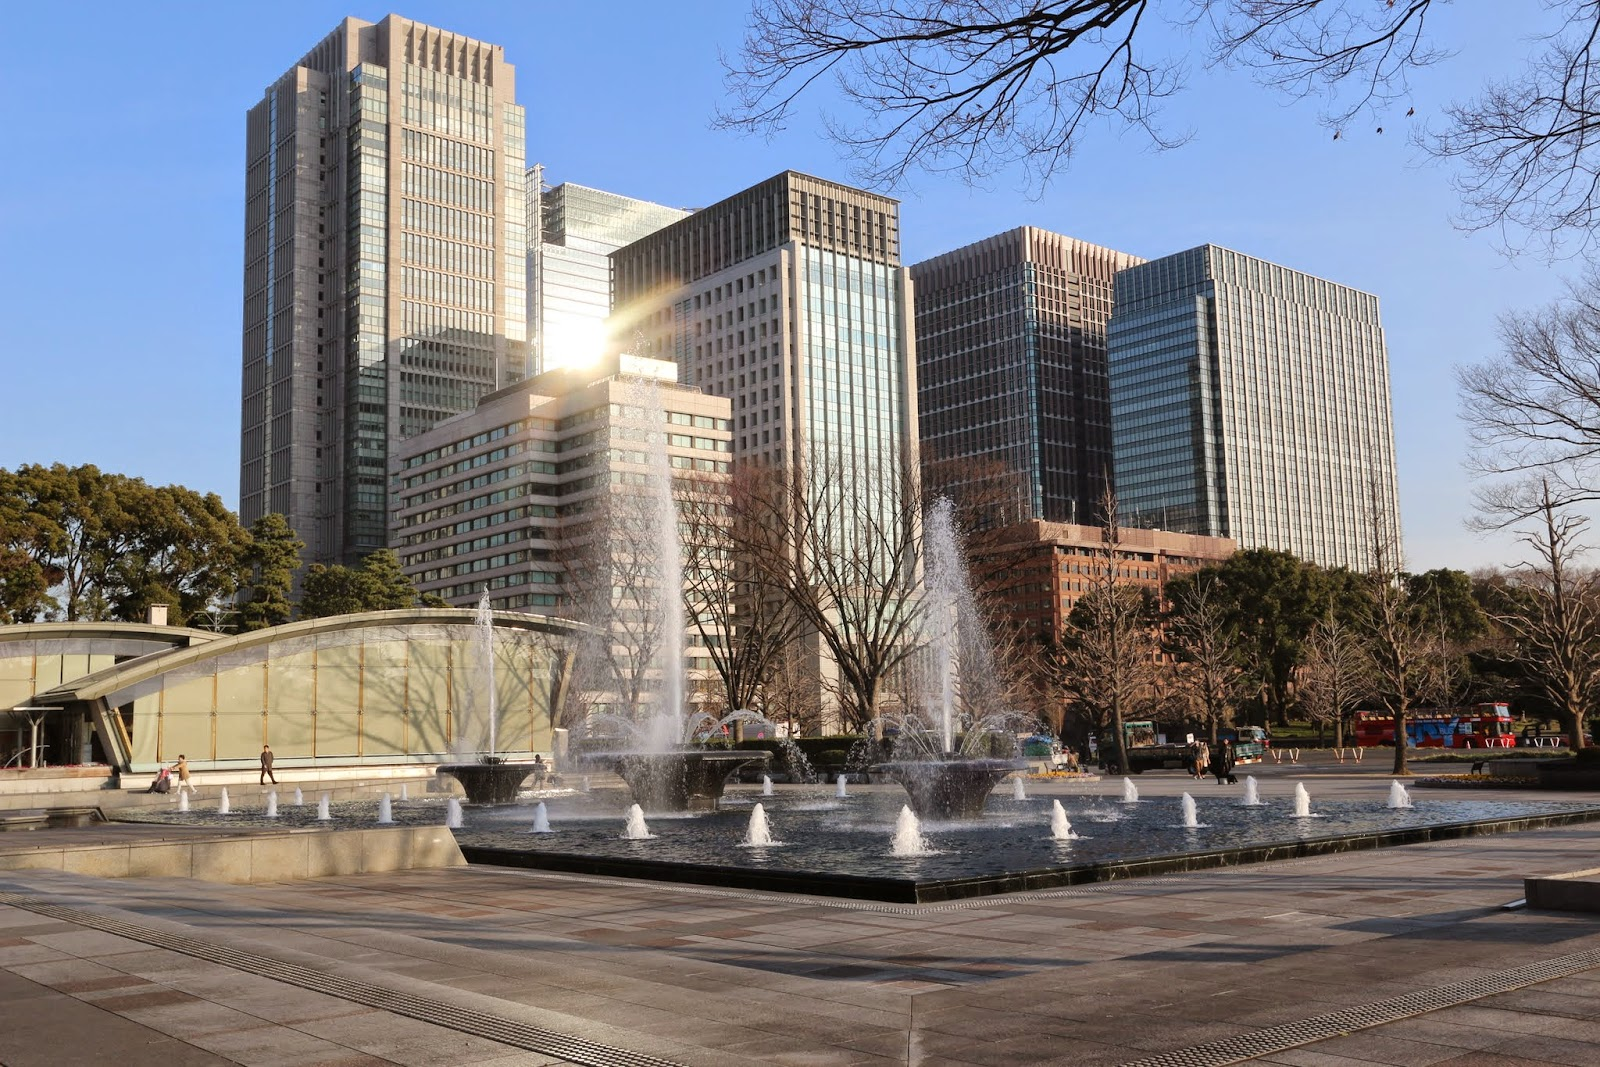 A huge park nearby skyscrapers of Marunouchi business district in Tokyo, Japan